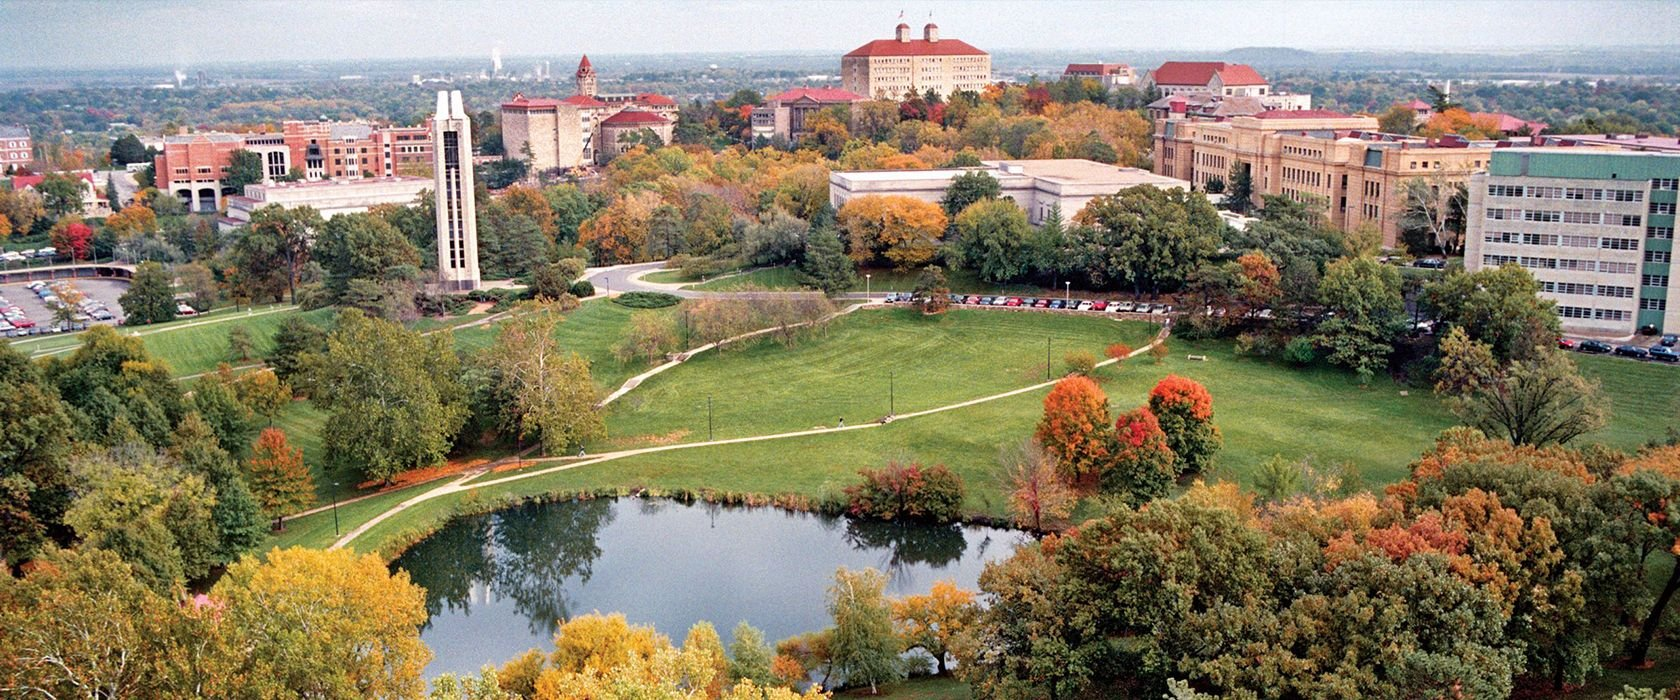 Lawrence, KS